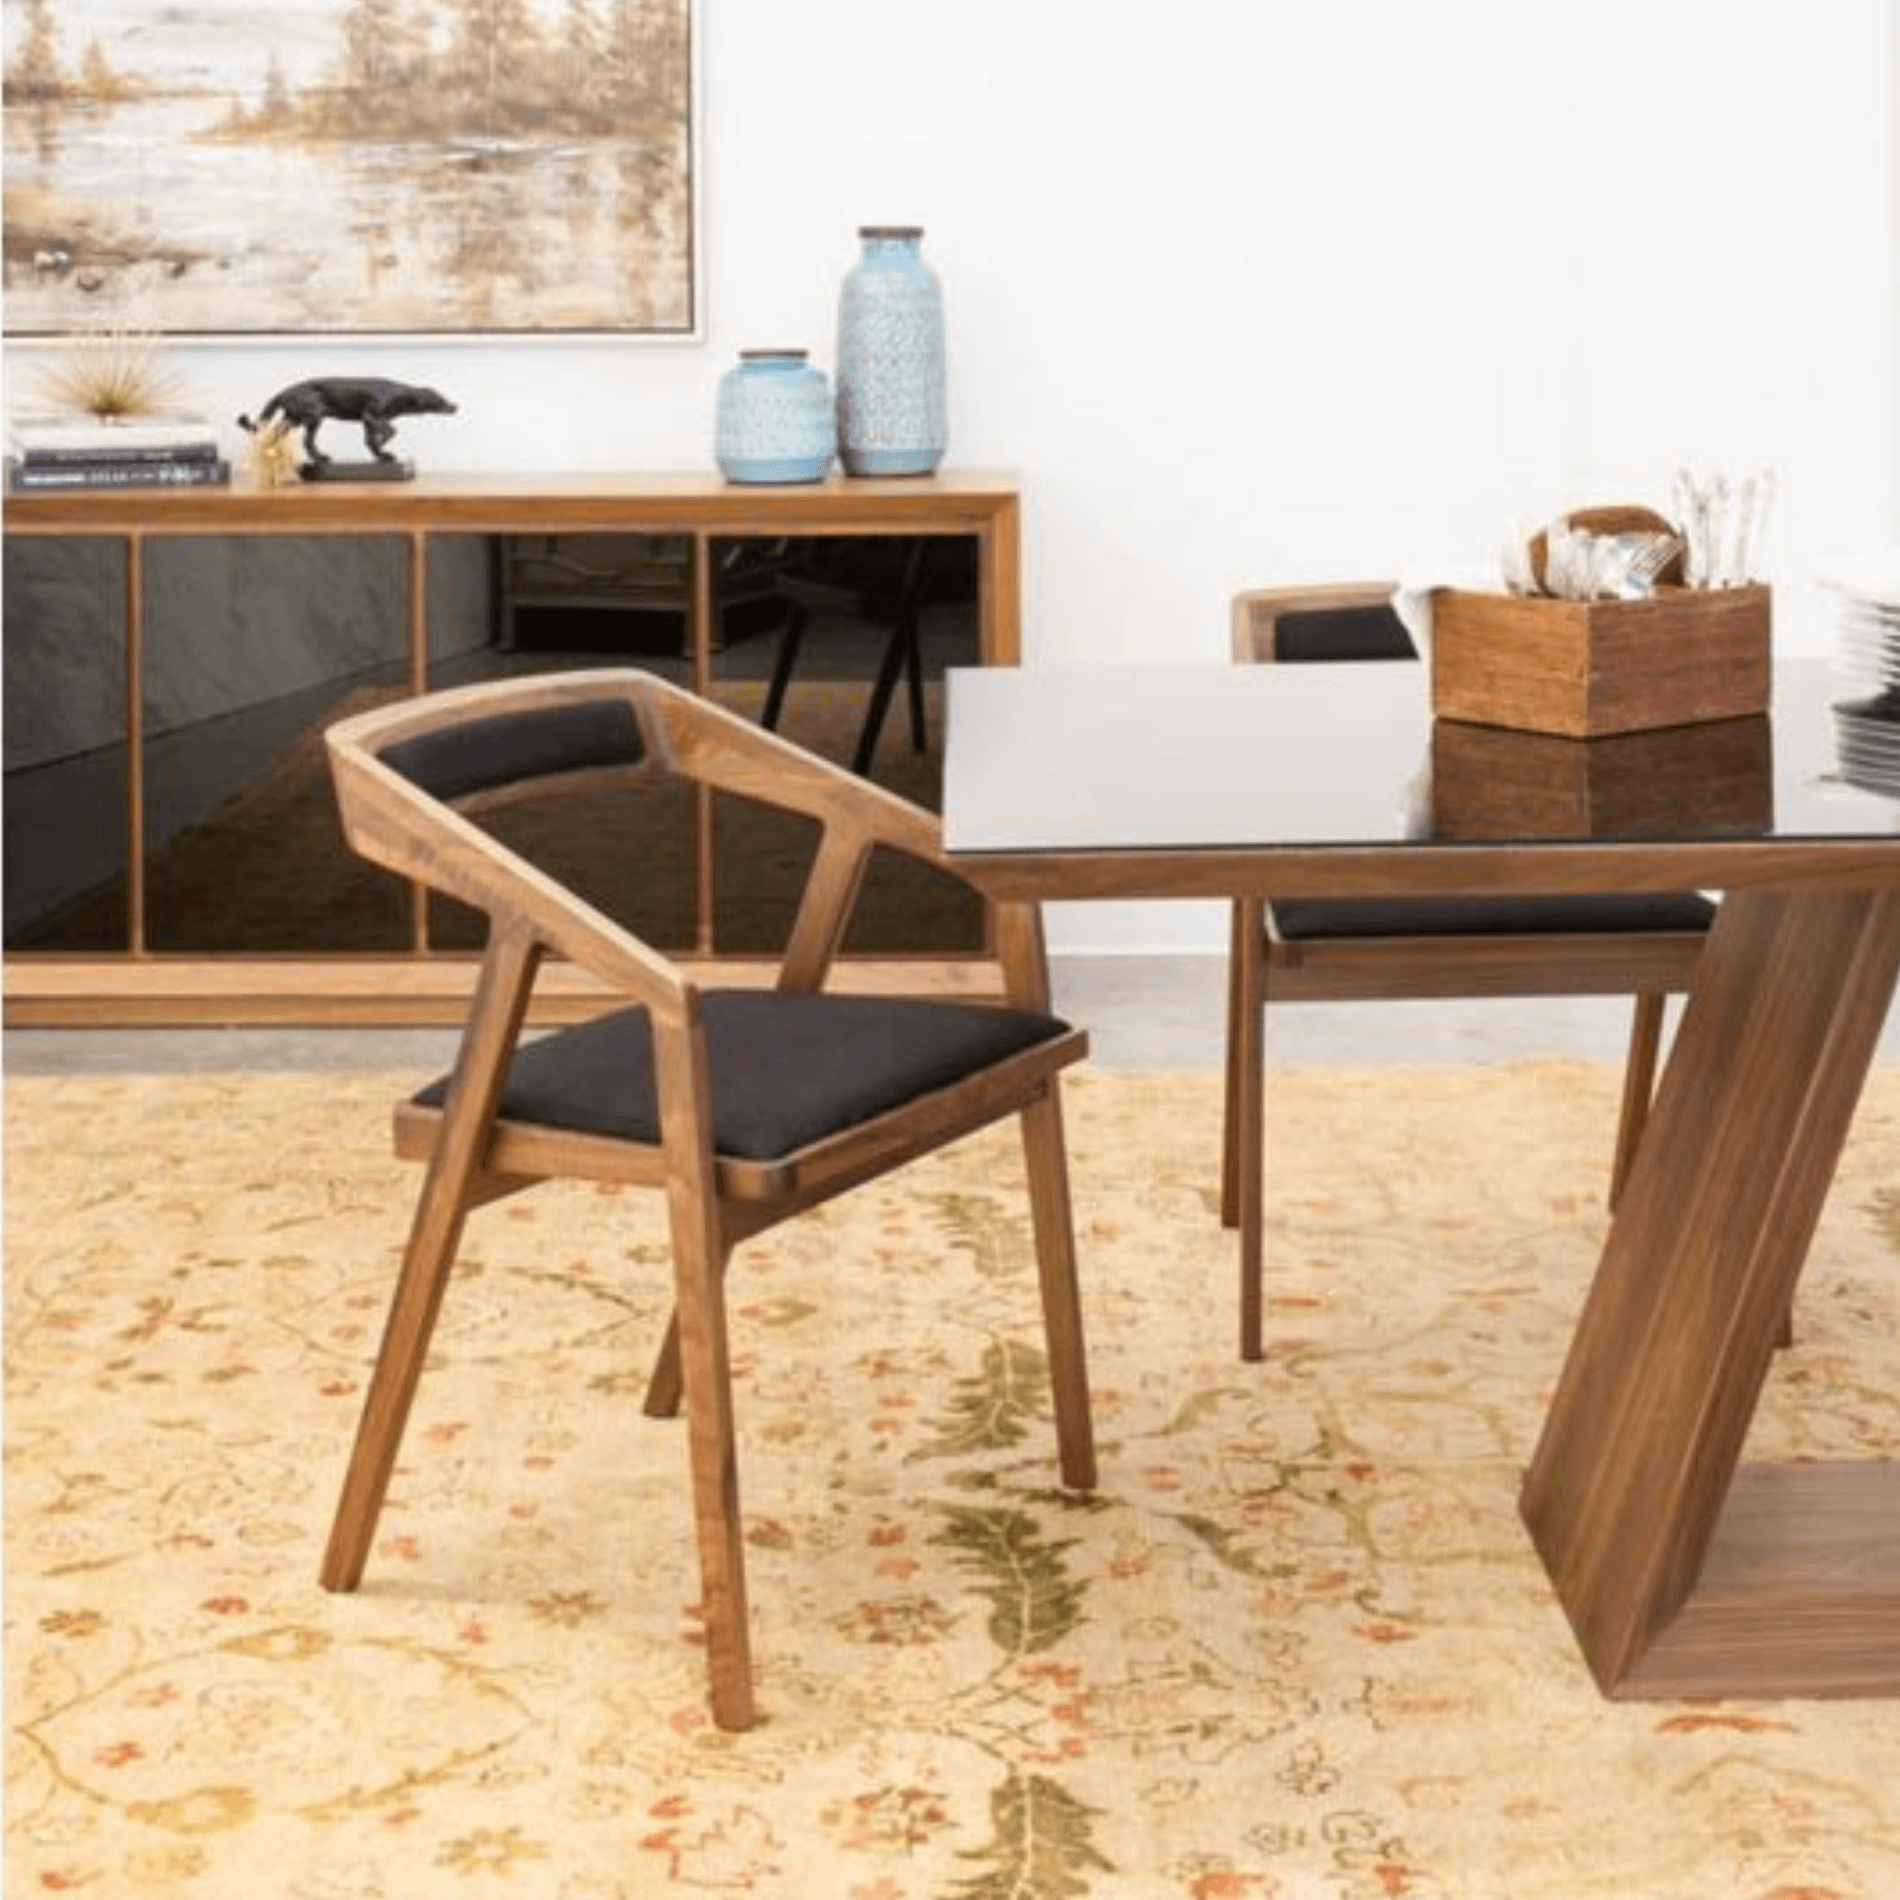 Marlo Dining Chair - Lifestyle Shot